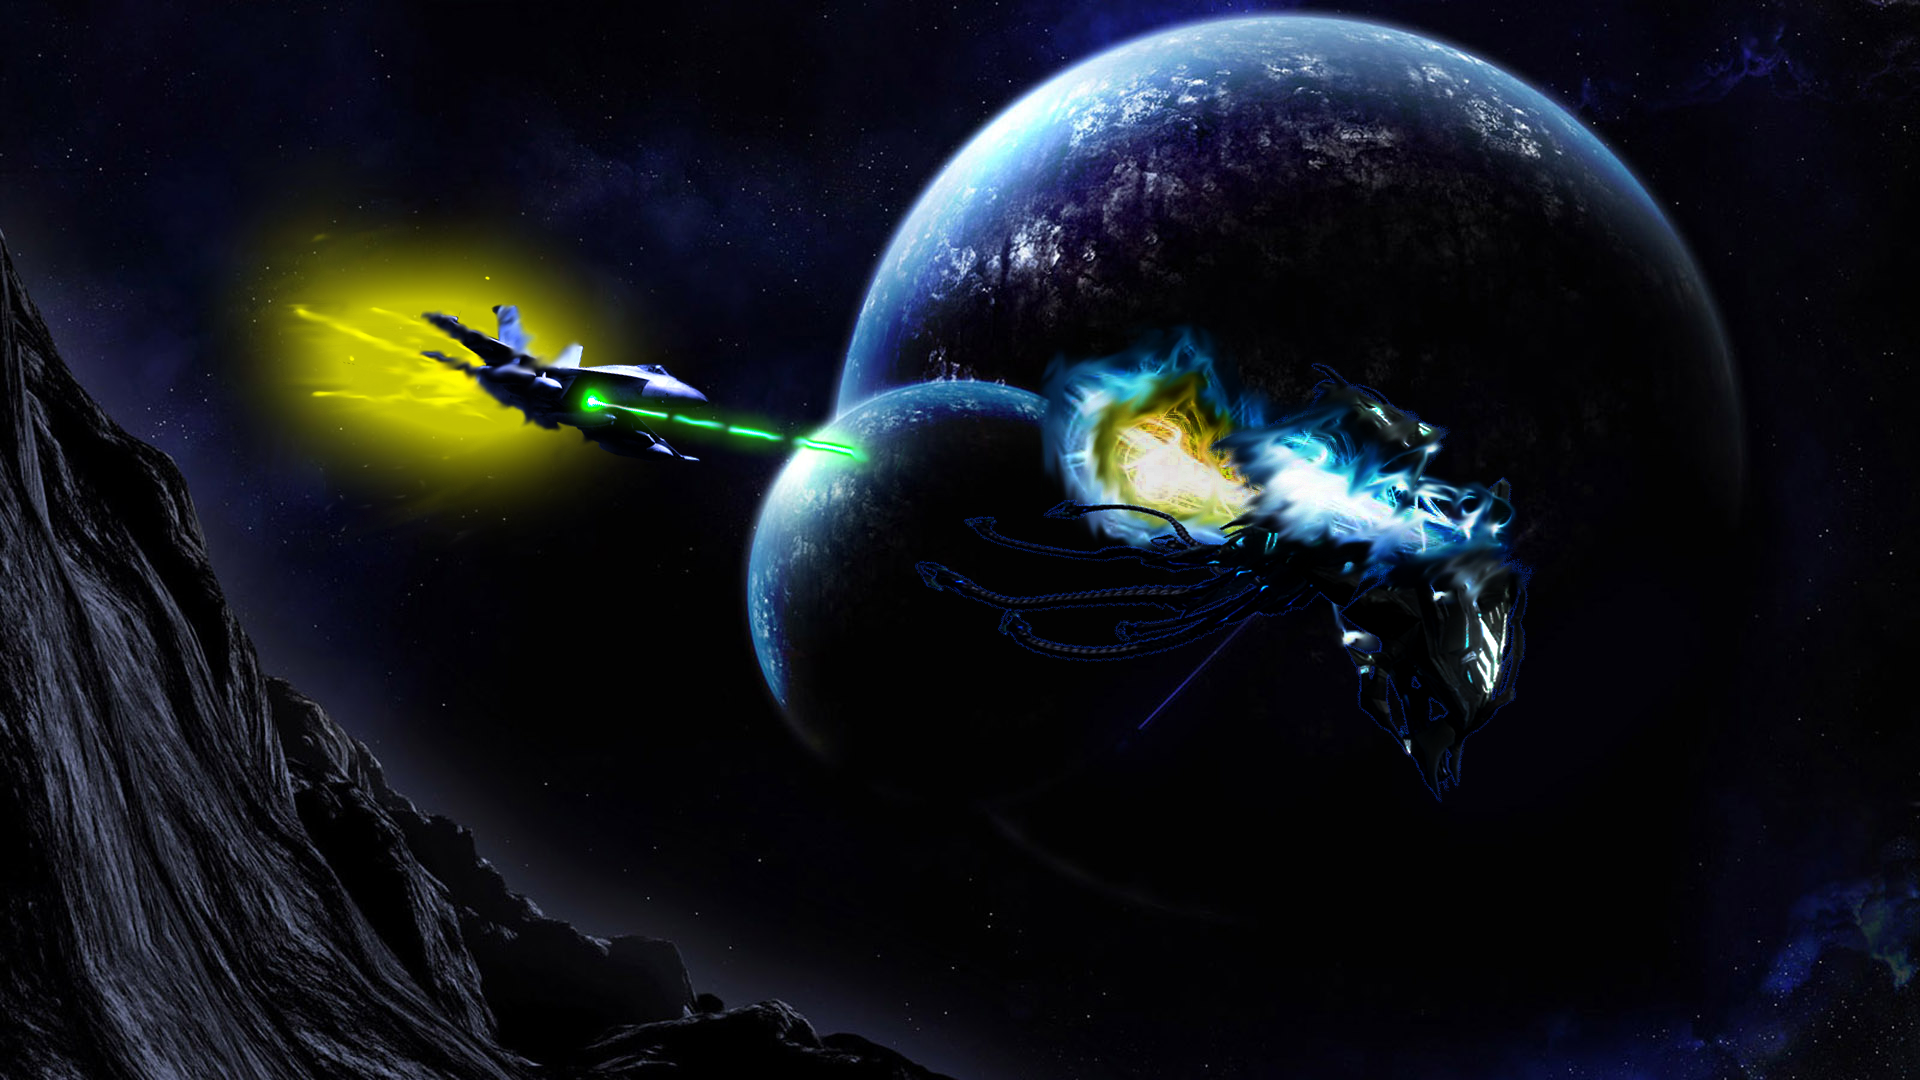 Epic Space Wallpaper: Epic Space Battle By DrilburNG On DeviantArt